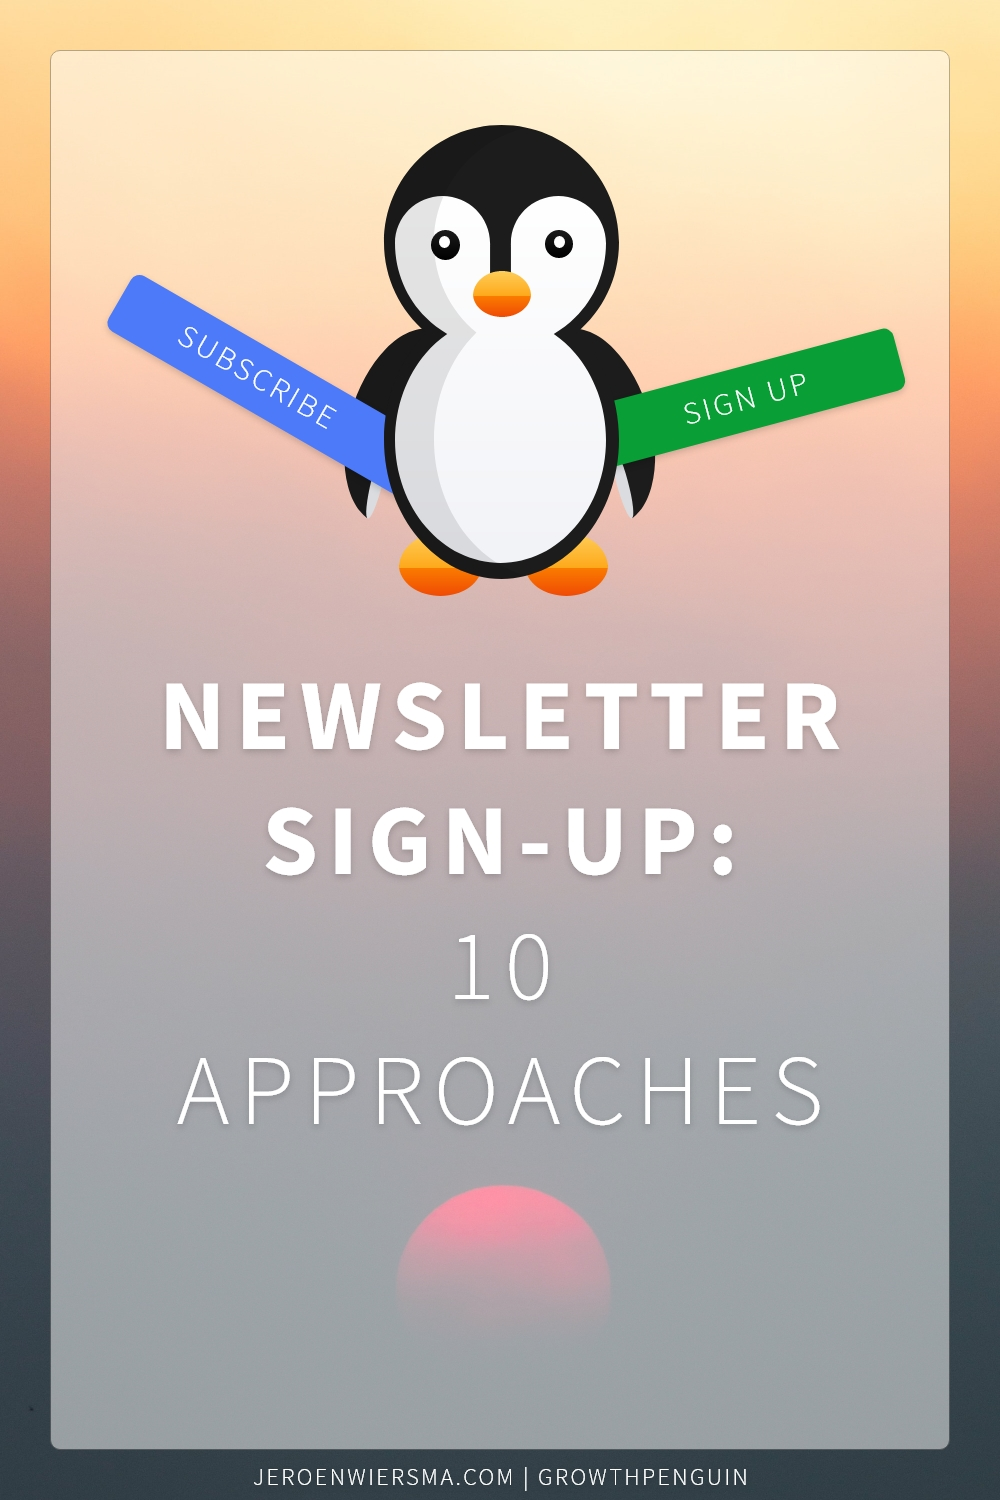 Newsletter sign-up 10 approaches